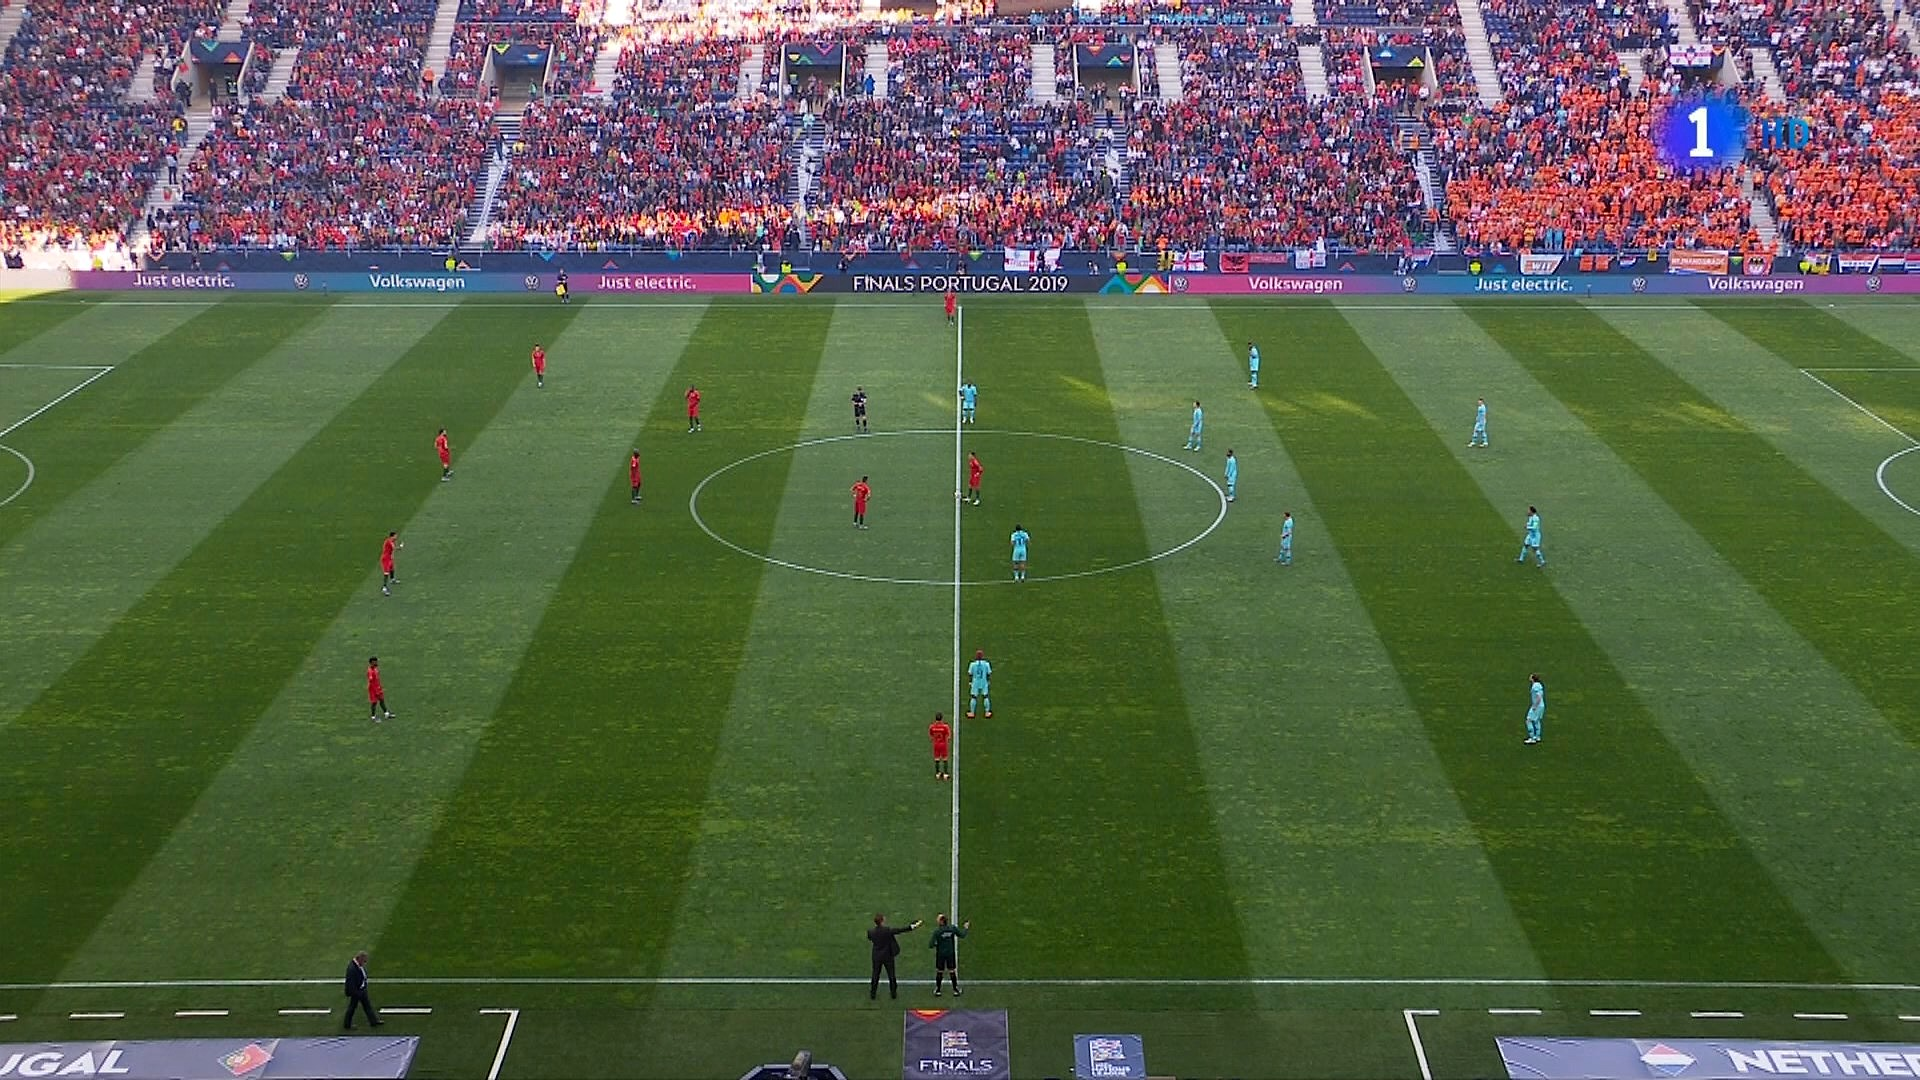 UEFA Nations League 2018/2019 - Final - Portugal Vs. Holanda (1080i) (Castellano) 63c22d91082172080d028aea7395caa3o